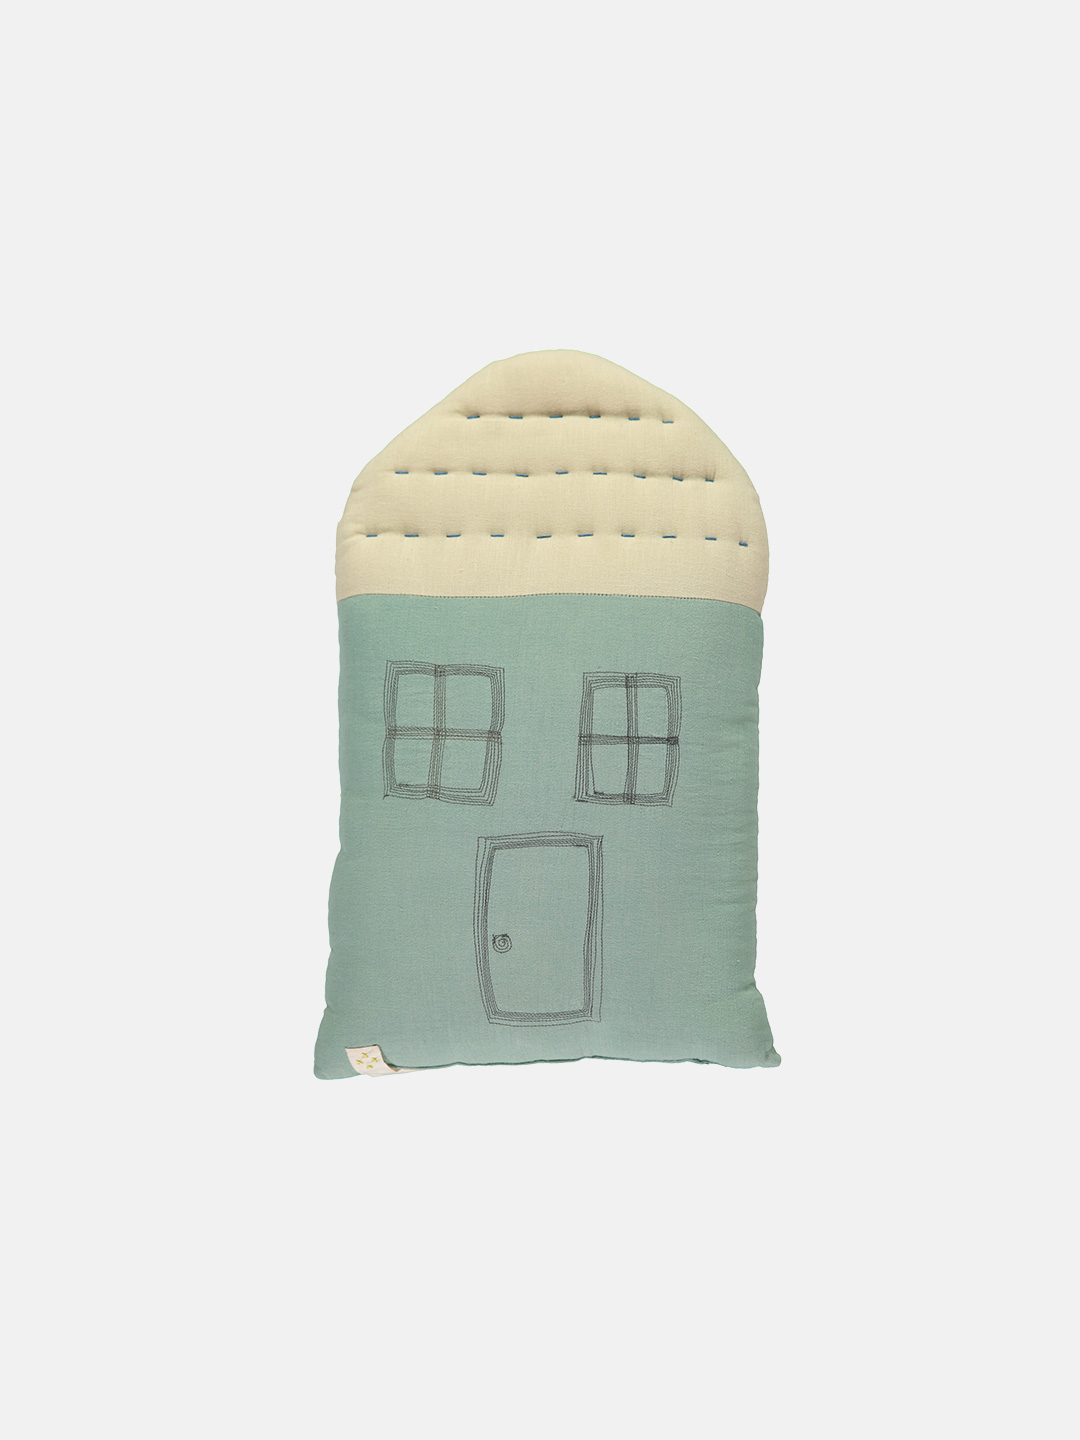 Midi House Cushion - Light Teal & Stone